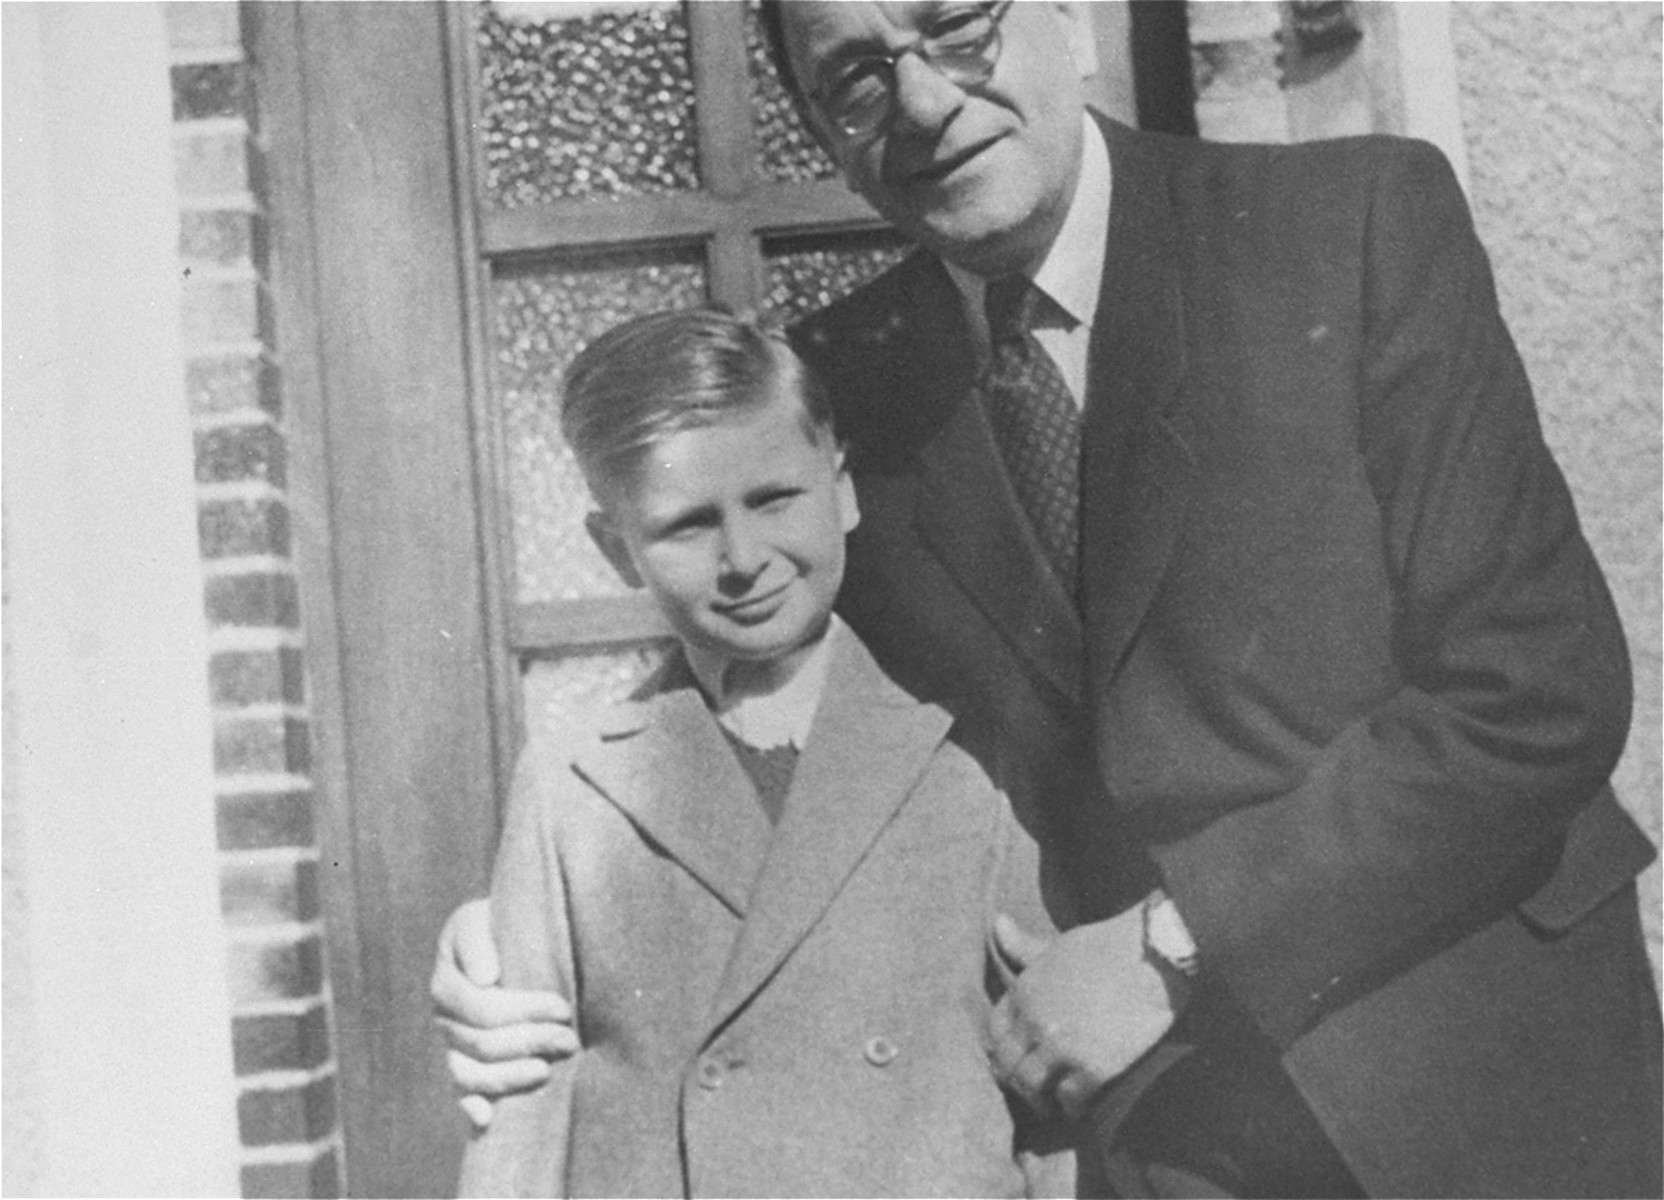 Stefan Natan Rozenberg poses with his father in postwar Germany.